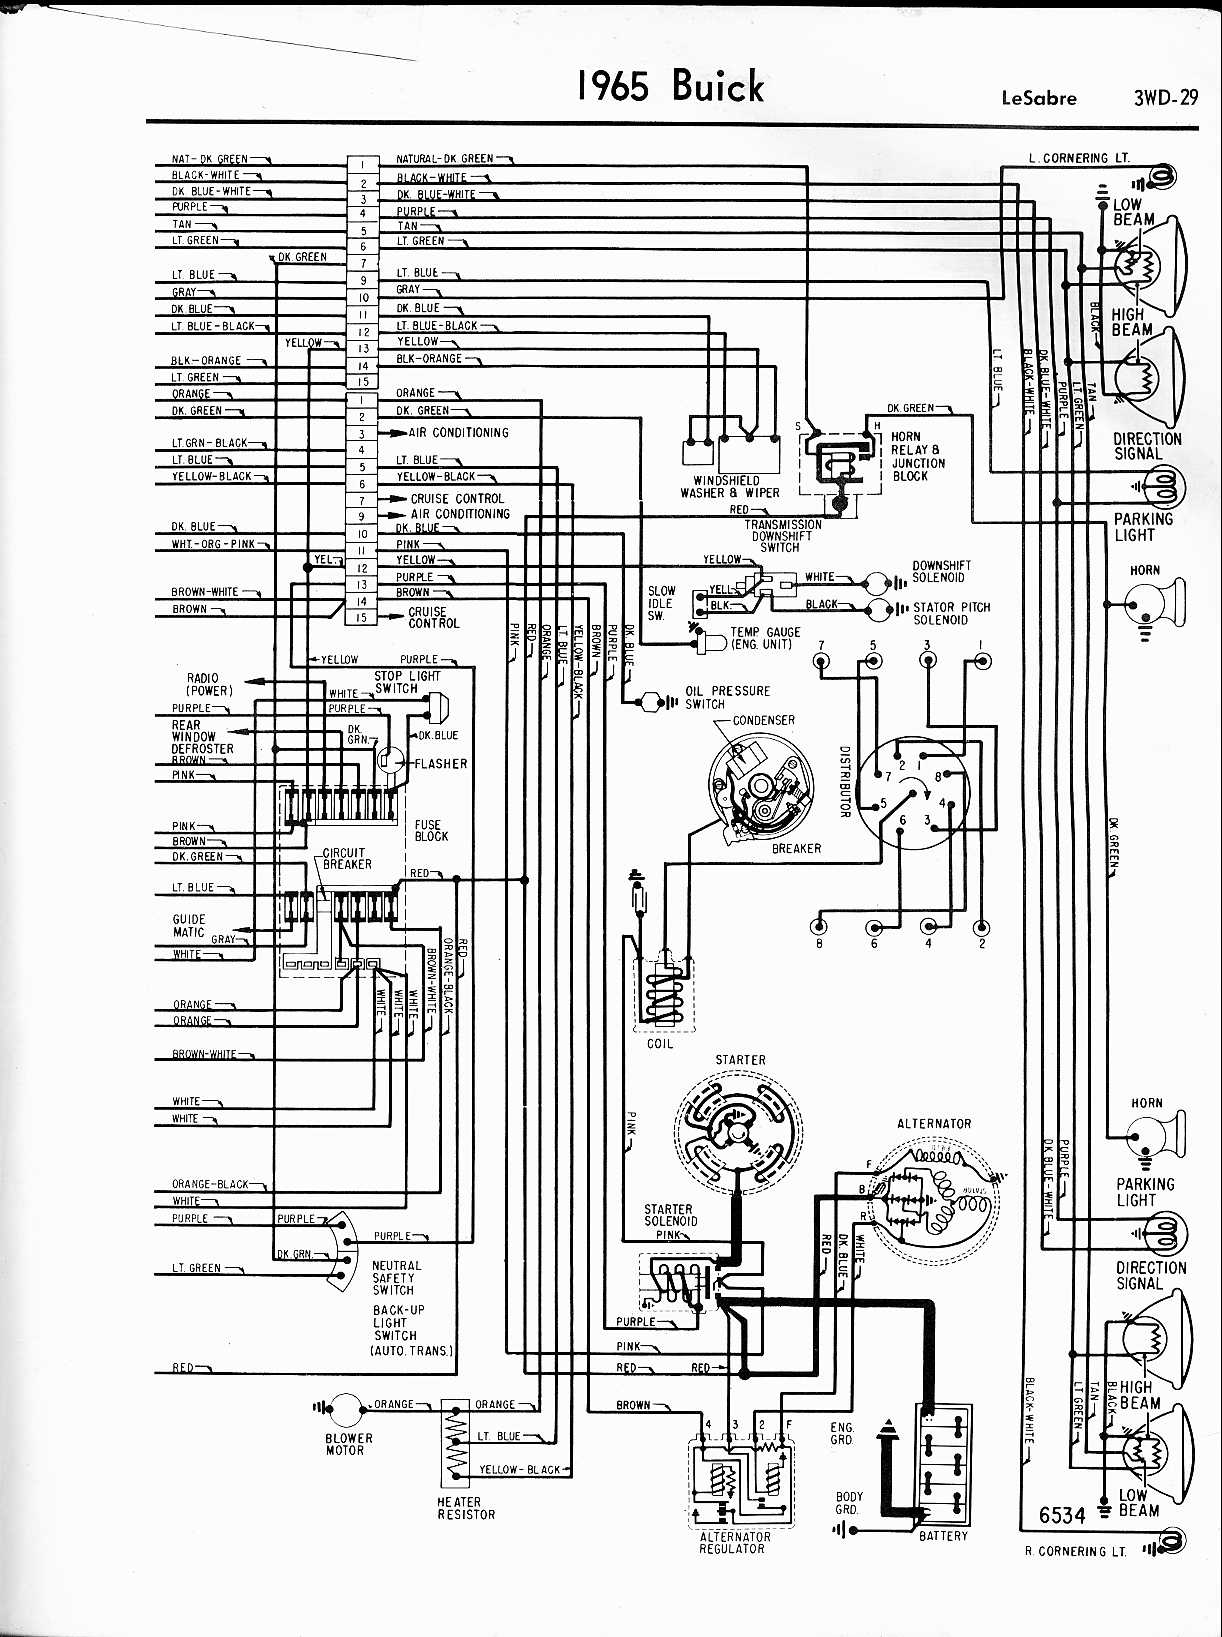 Buick Wiring Diagrams: 1957-1965 on freightliner cruise control diagram, freightliner parts diagrams, freightliner suspension diagram, freightliner electrical diagrams, freightliner fuse panel diagram, freightliner starter diagram, freightliner a c compressor diagram, freightliner ac diagram, freightliner truck diagram, freightliner starter solenoid wiring, freightliner columbia fuse box diagram, freightliner schematics, freightliner air system diagram, freightliner fuel system diagram, freightliner fuse box location, freightliner relay diagram, freightliner air tank diagram, 2007 freightliner columbia plug diagrams, freightliner steering diagram, freightliner wiring help,